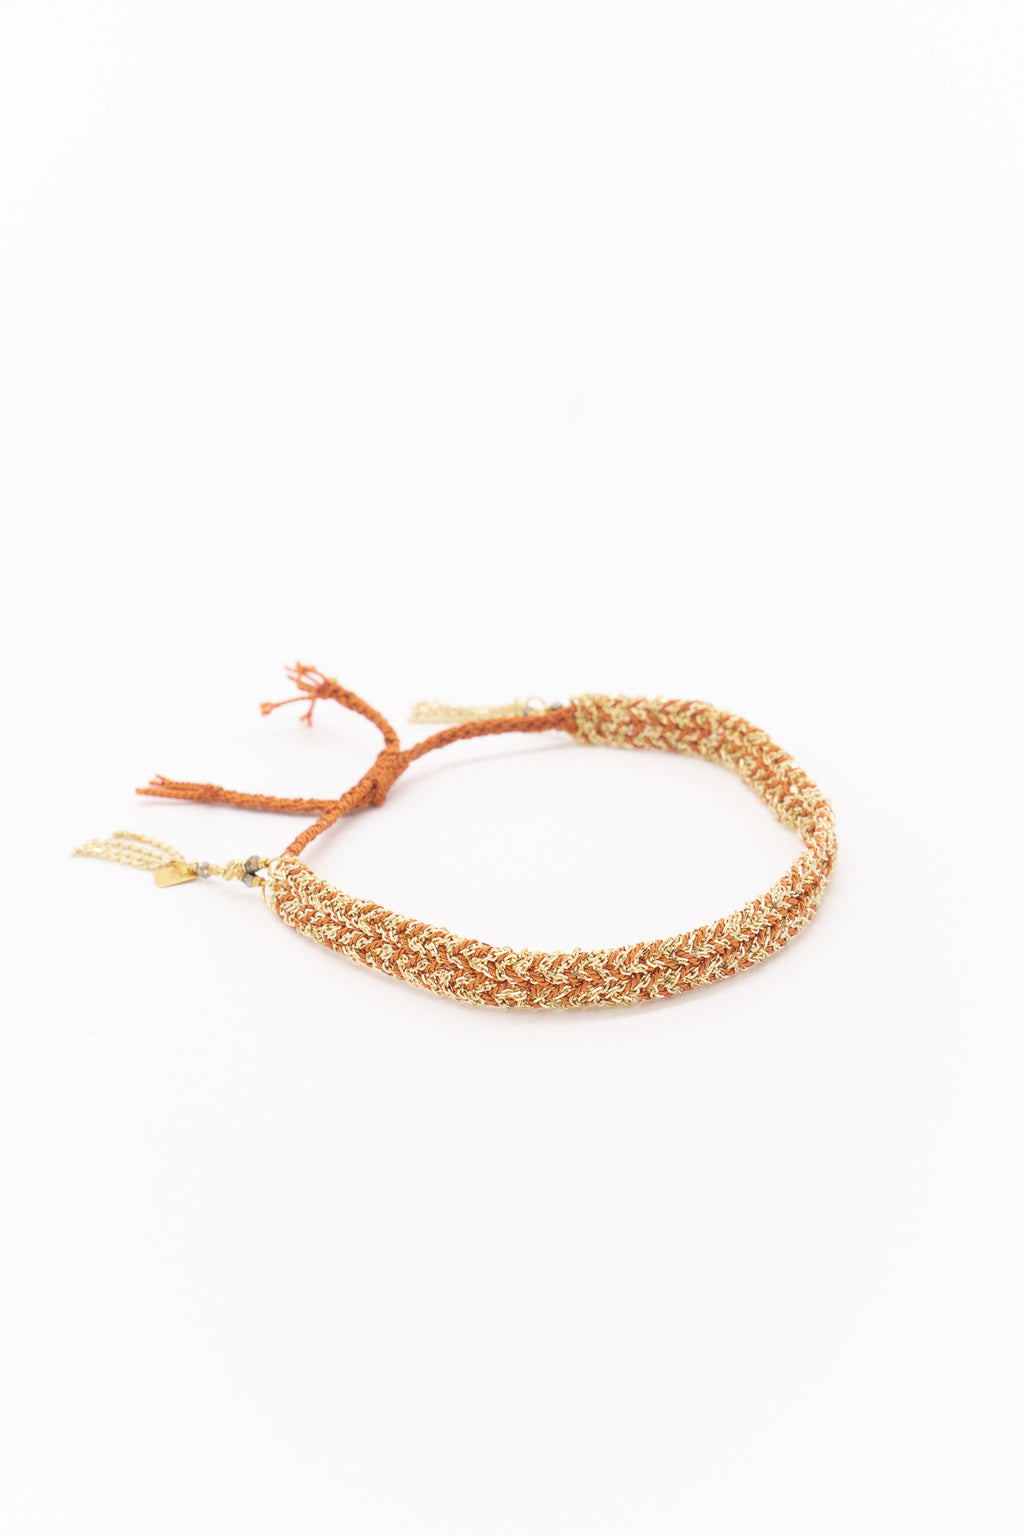 Marie Laure Chamorel Plaited Bracelet in Gold Caramel